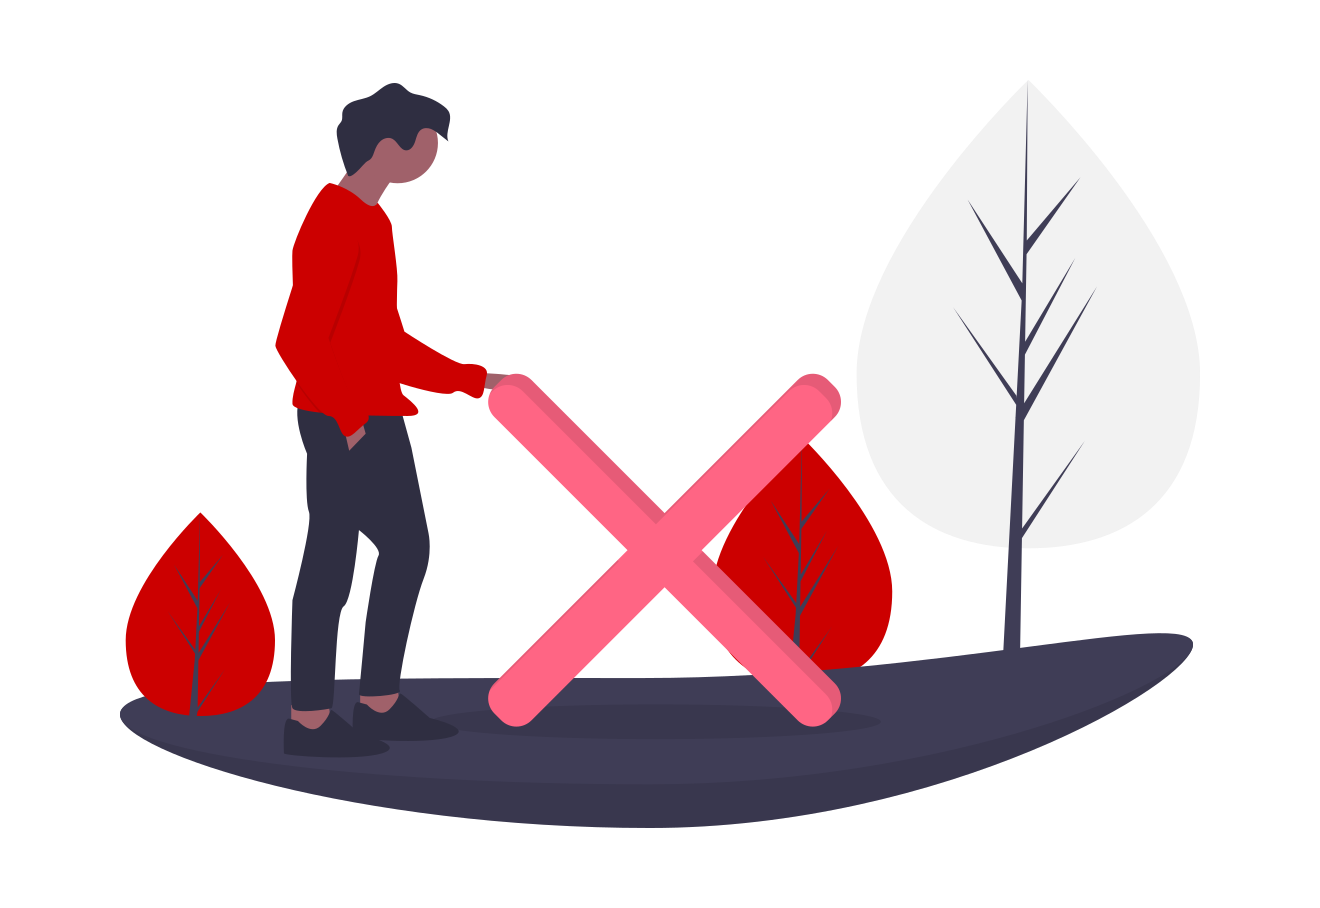 Person standing in a forest, touching a big red X, representing making a mistake